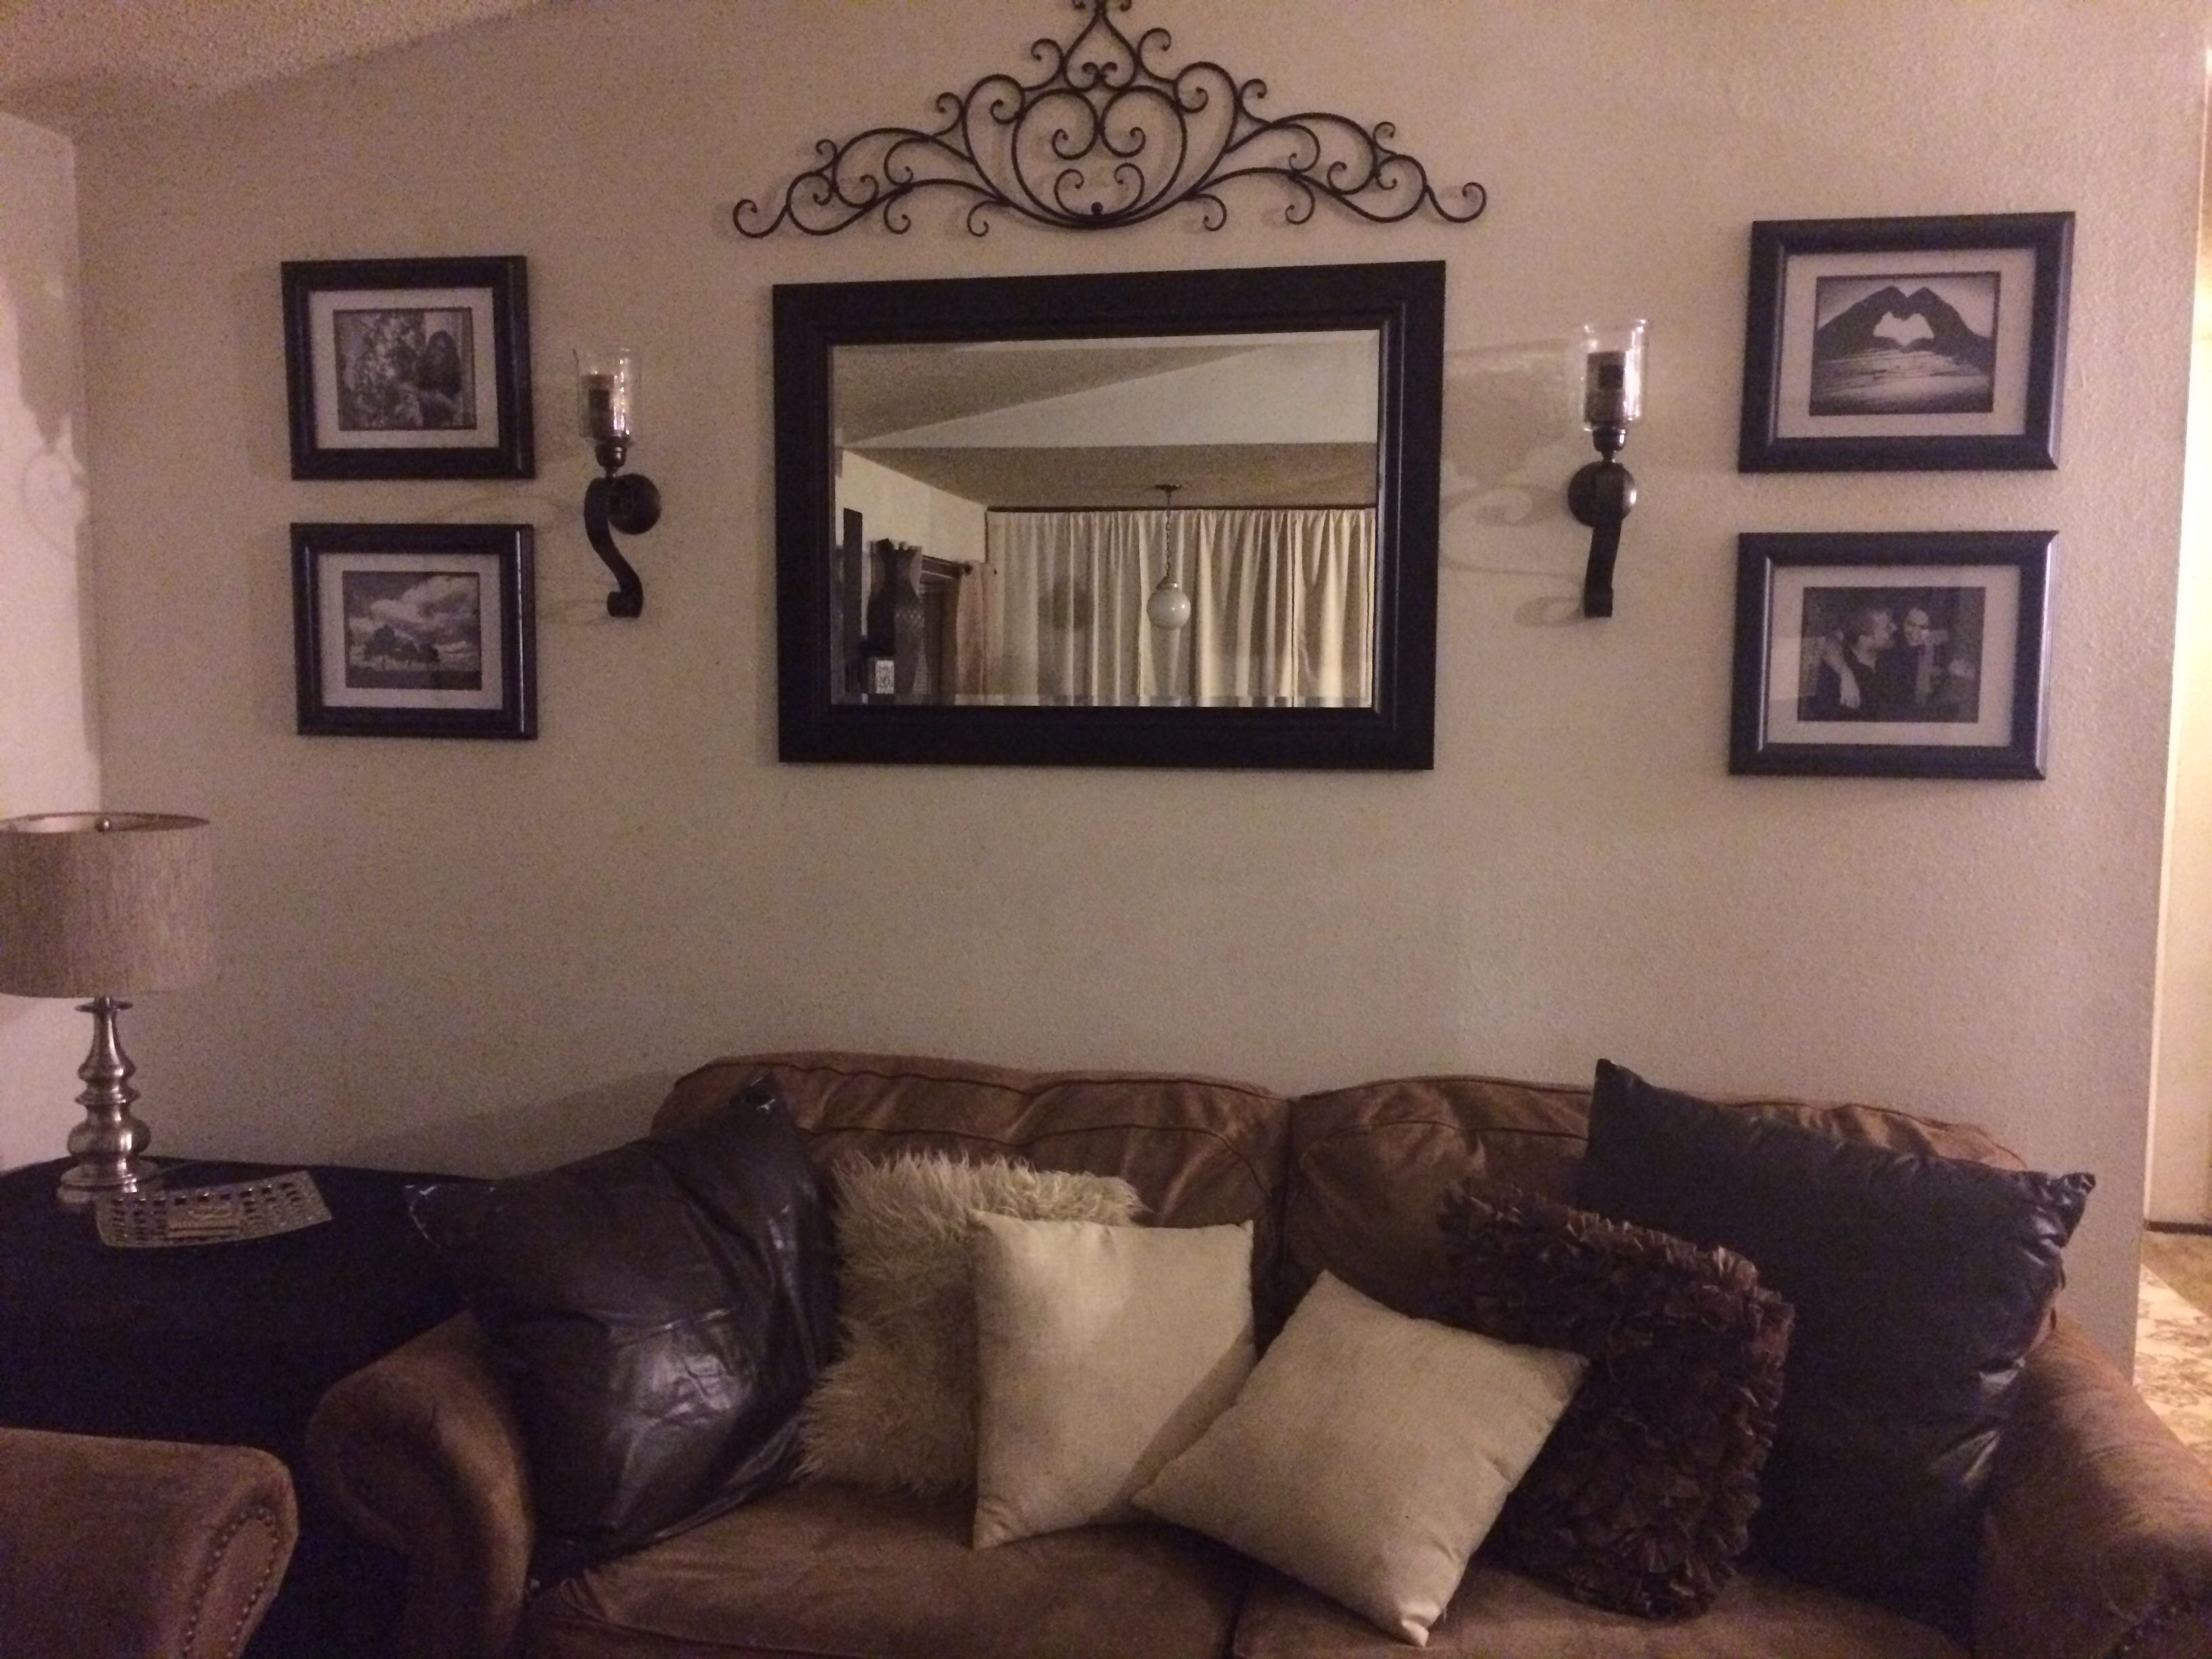 Mirror For Living Room Wall behind couch wall in living room mirror, frame, sconces, and metal